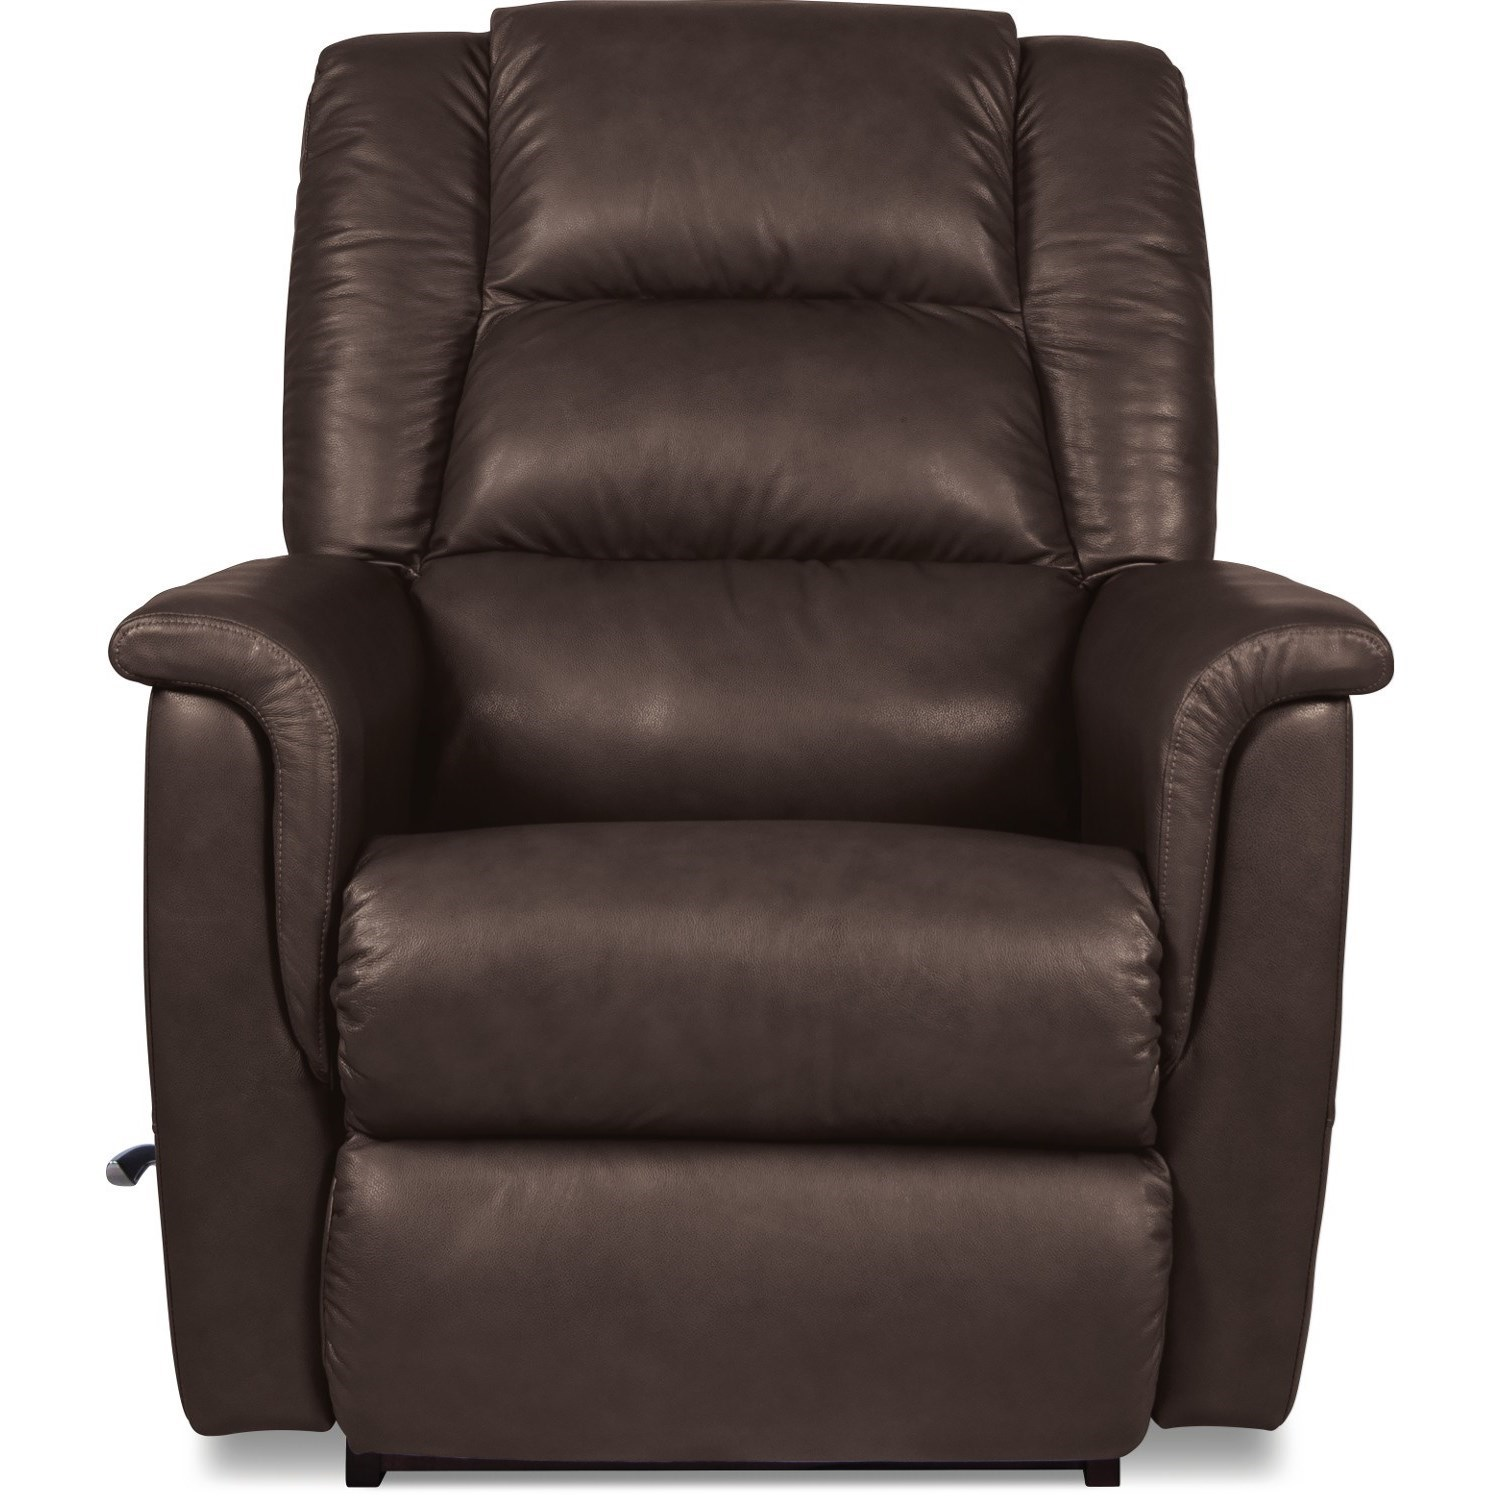 Murray Power Rocking Recliner w/ Headrest & Lumbar by La-Z-Boy at H.L. Stephens